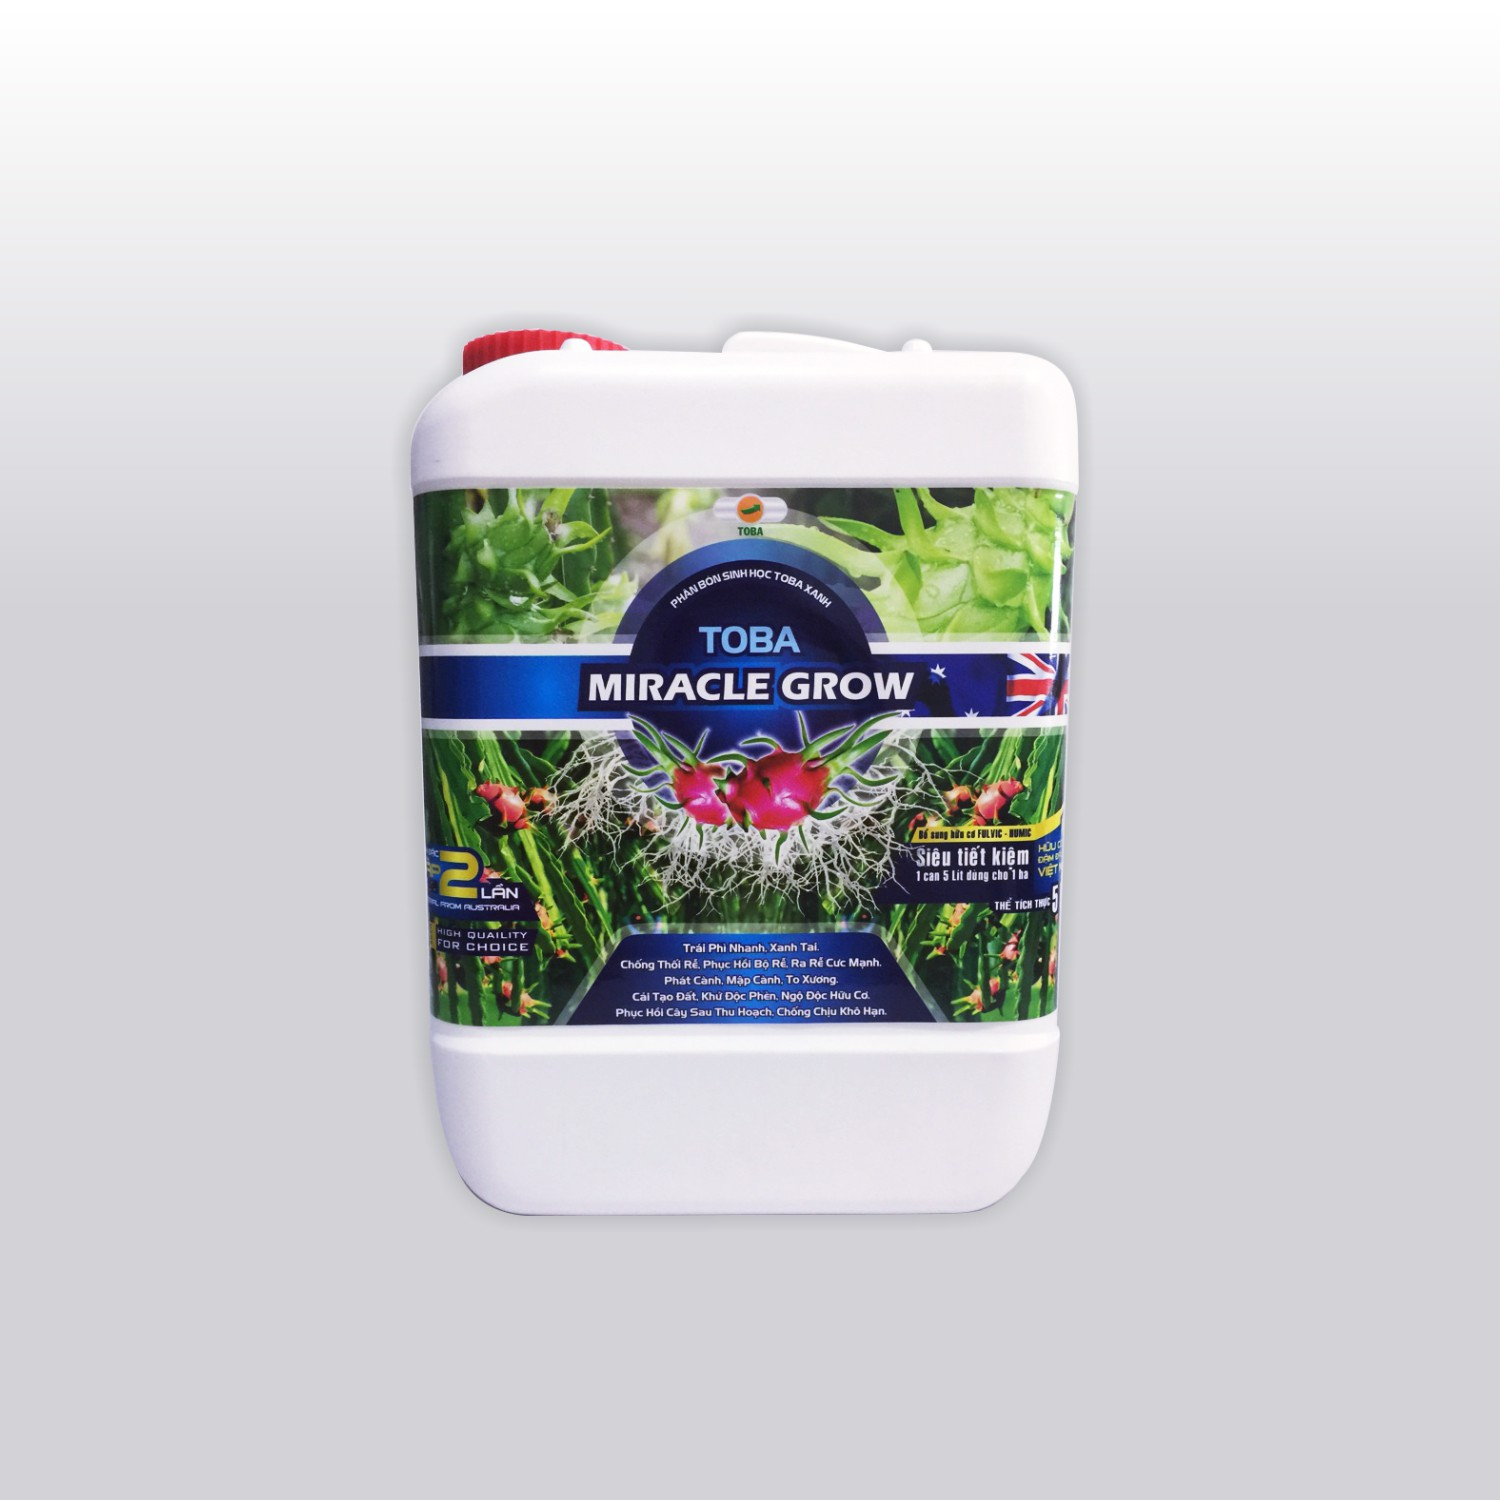 TOBA MICRACLE GROW - THANH LONG - Can 5 Lít